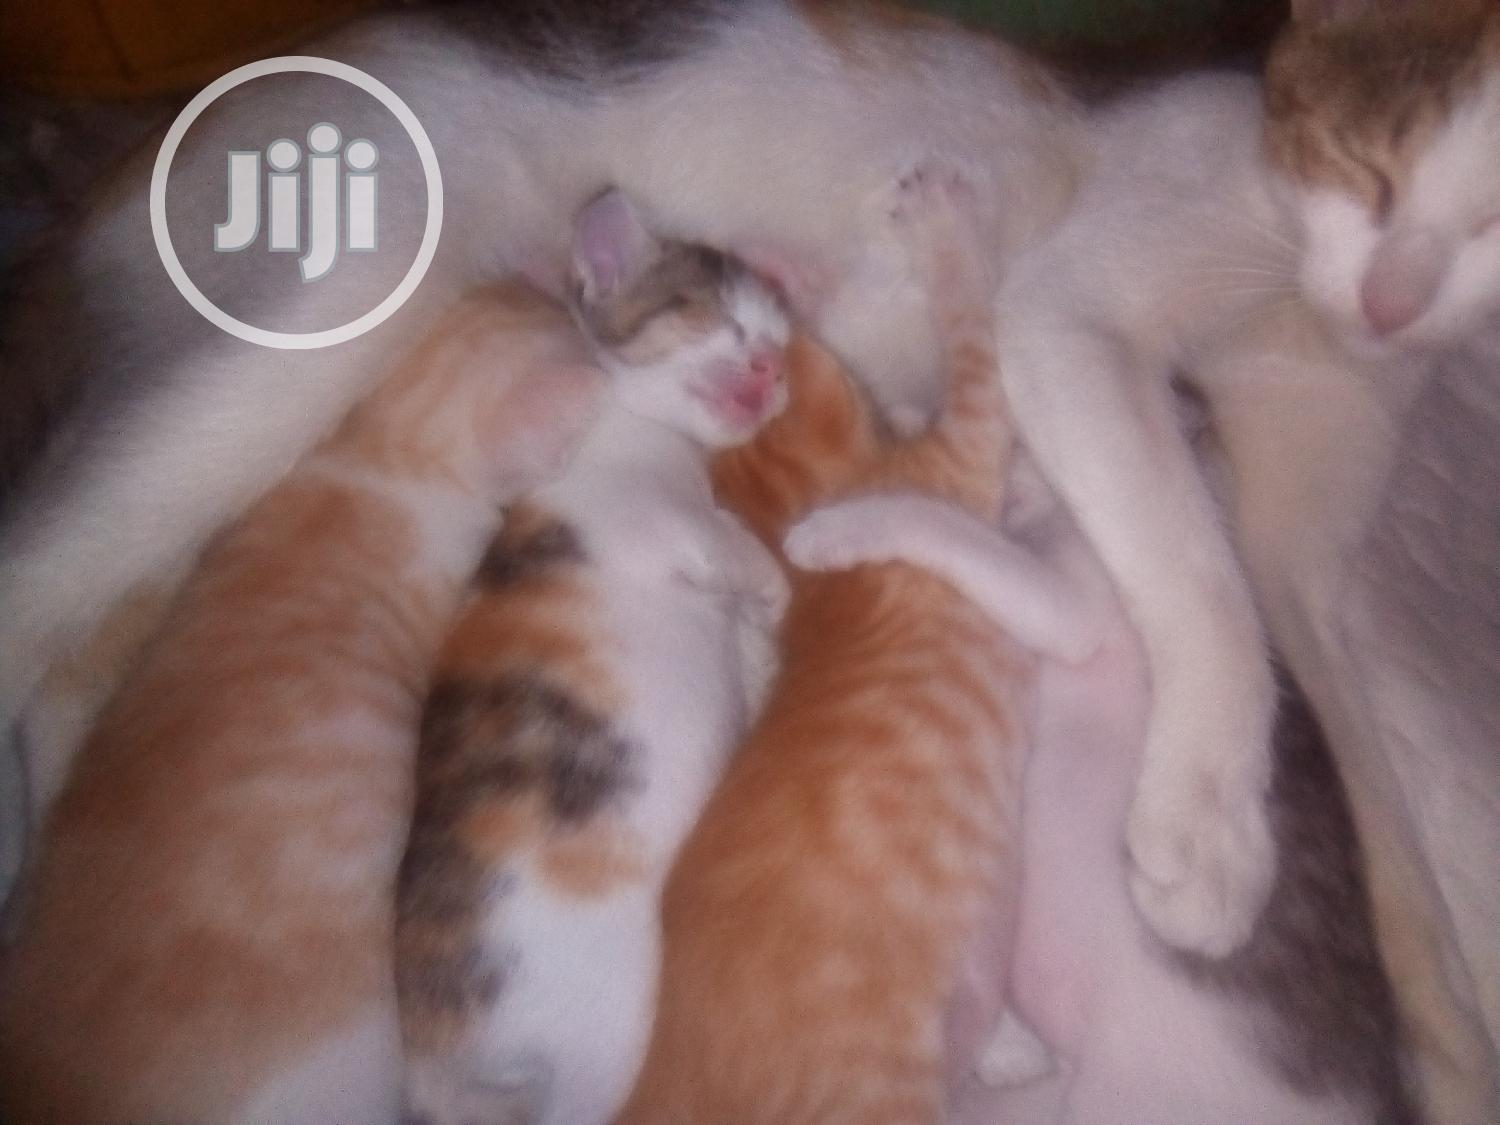 Archive: 0-1 month Female Purebred American Shorthair